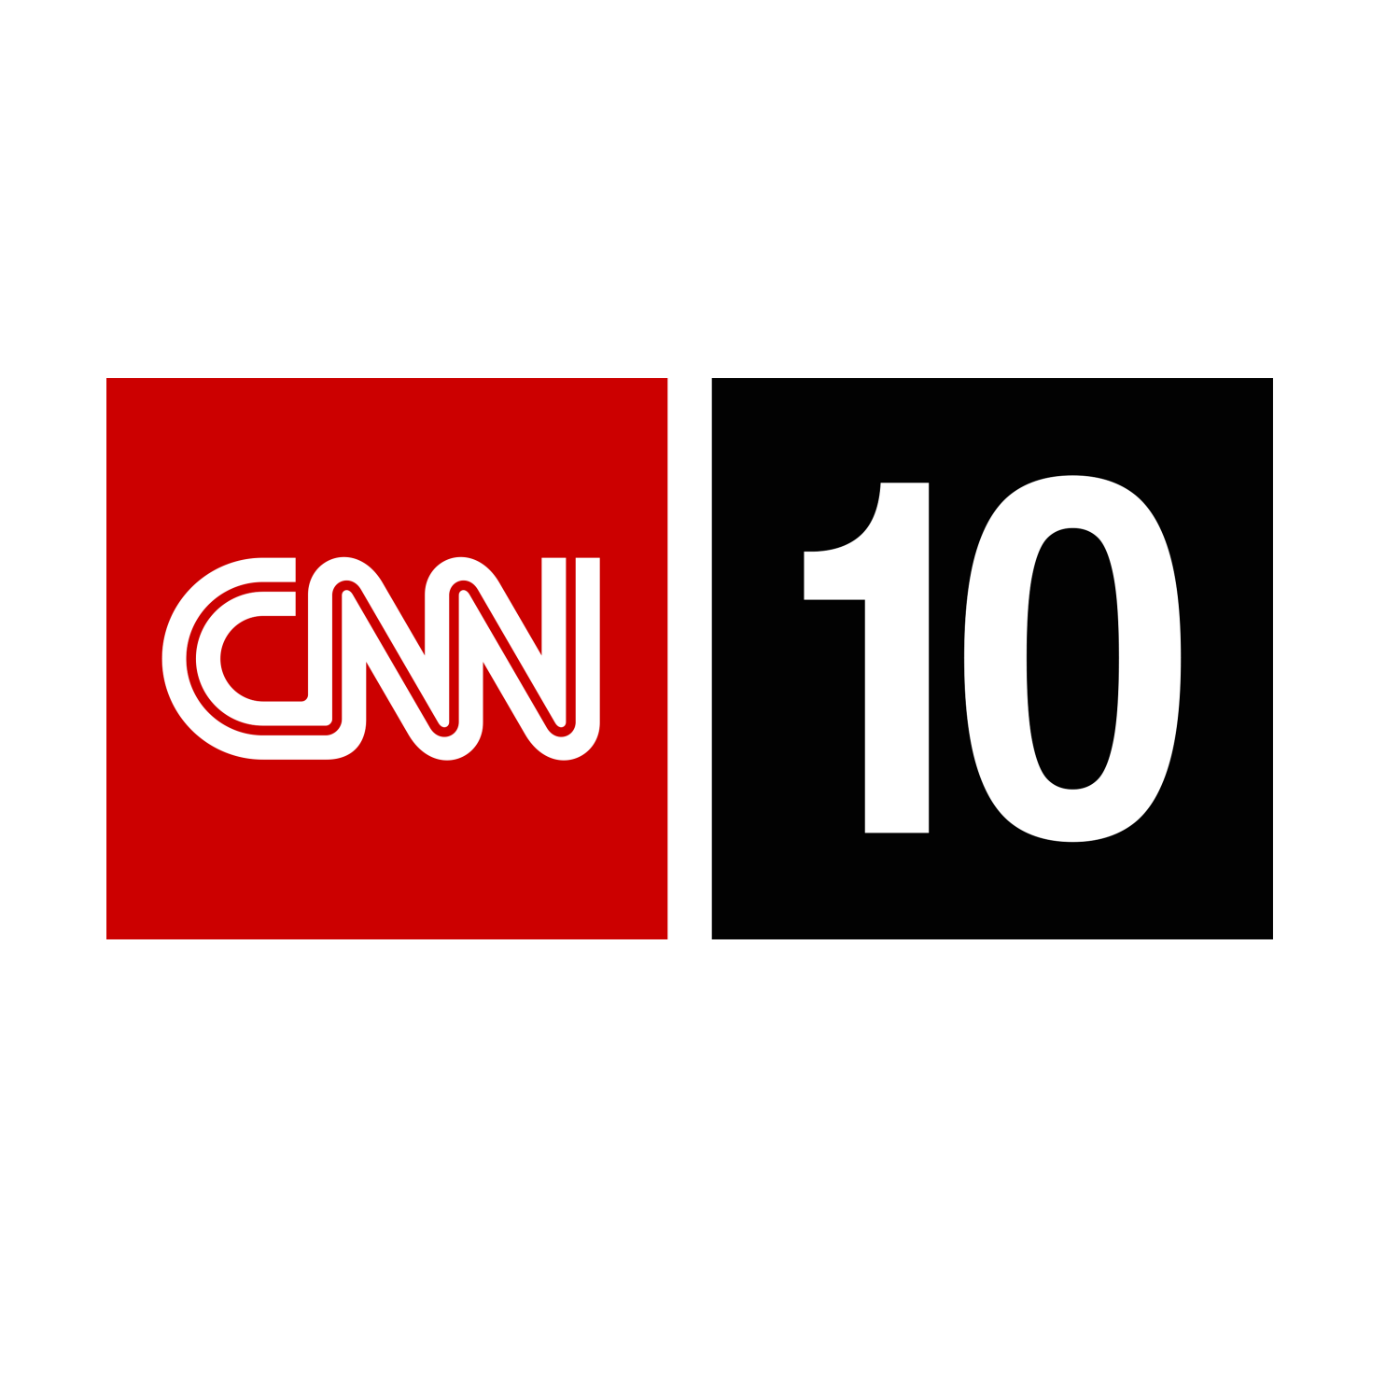 CNN Student News - May 28, 2013